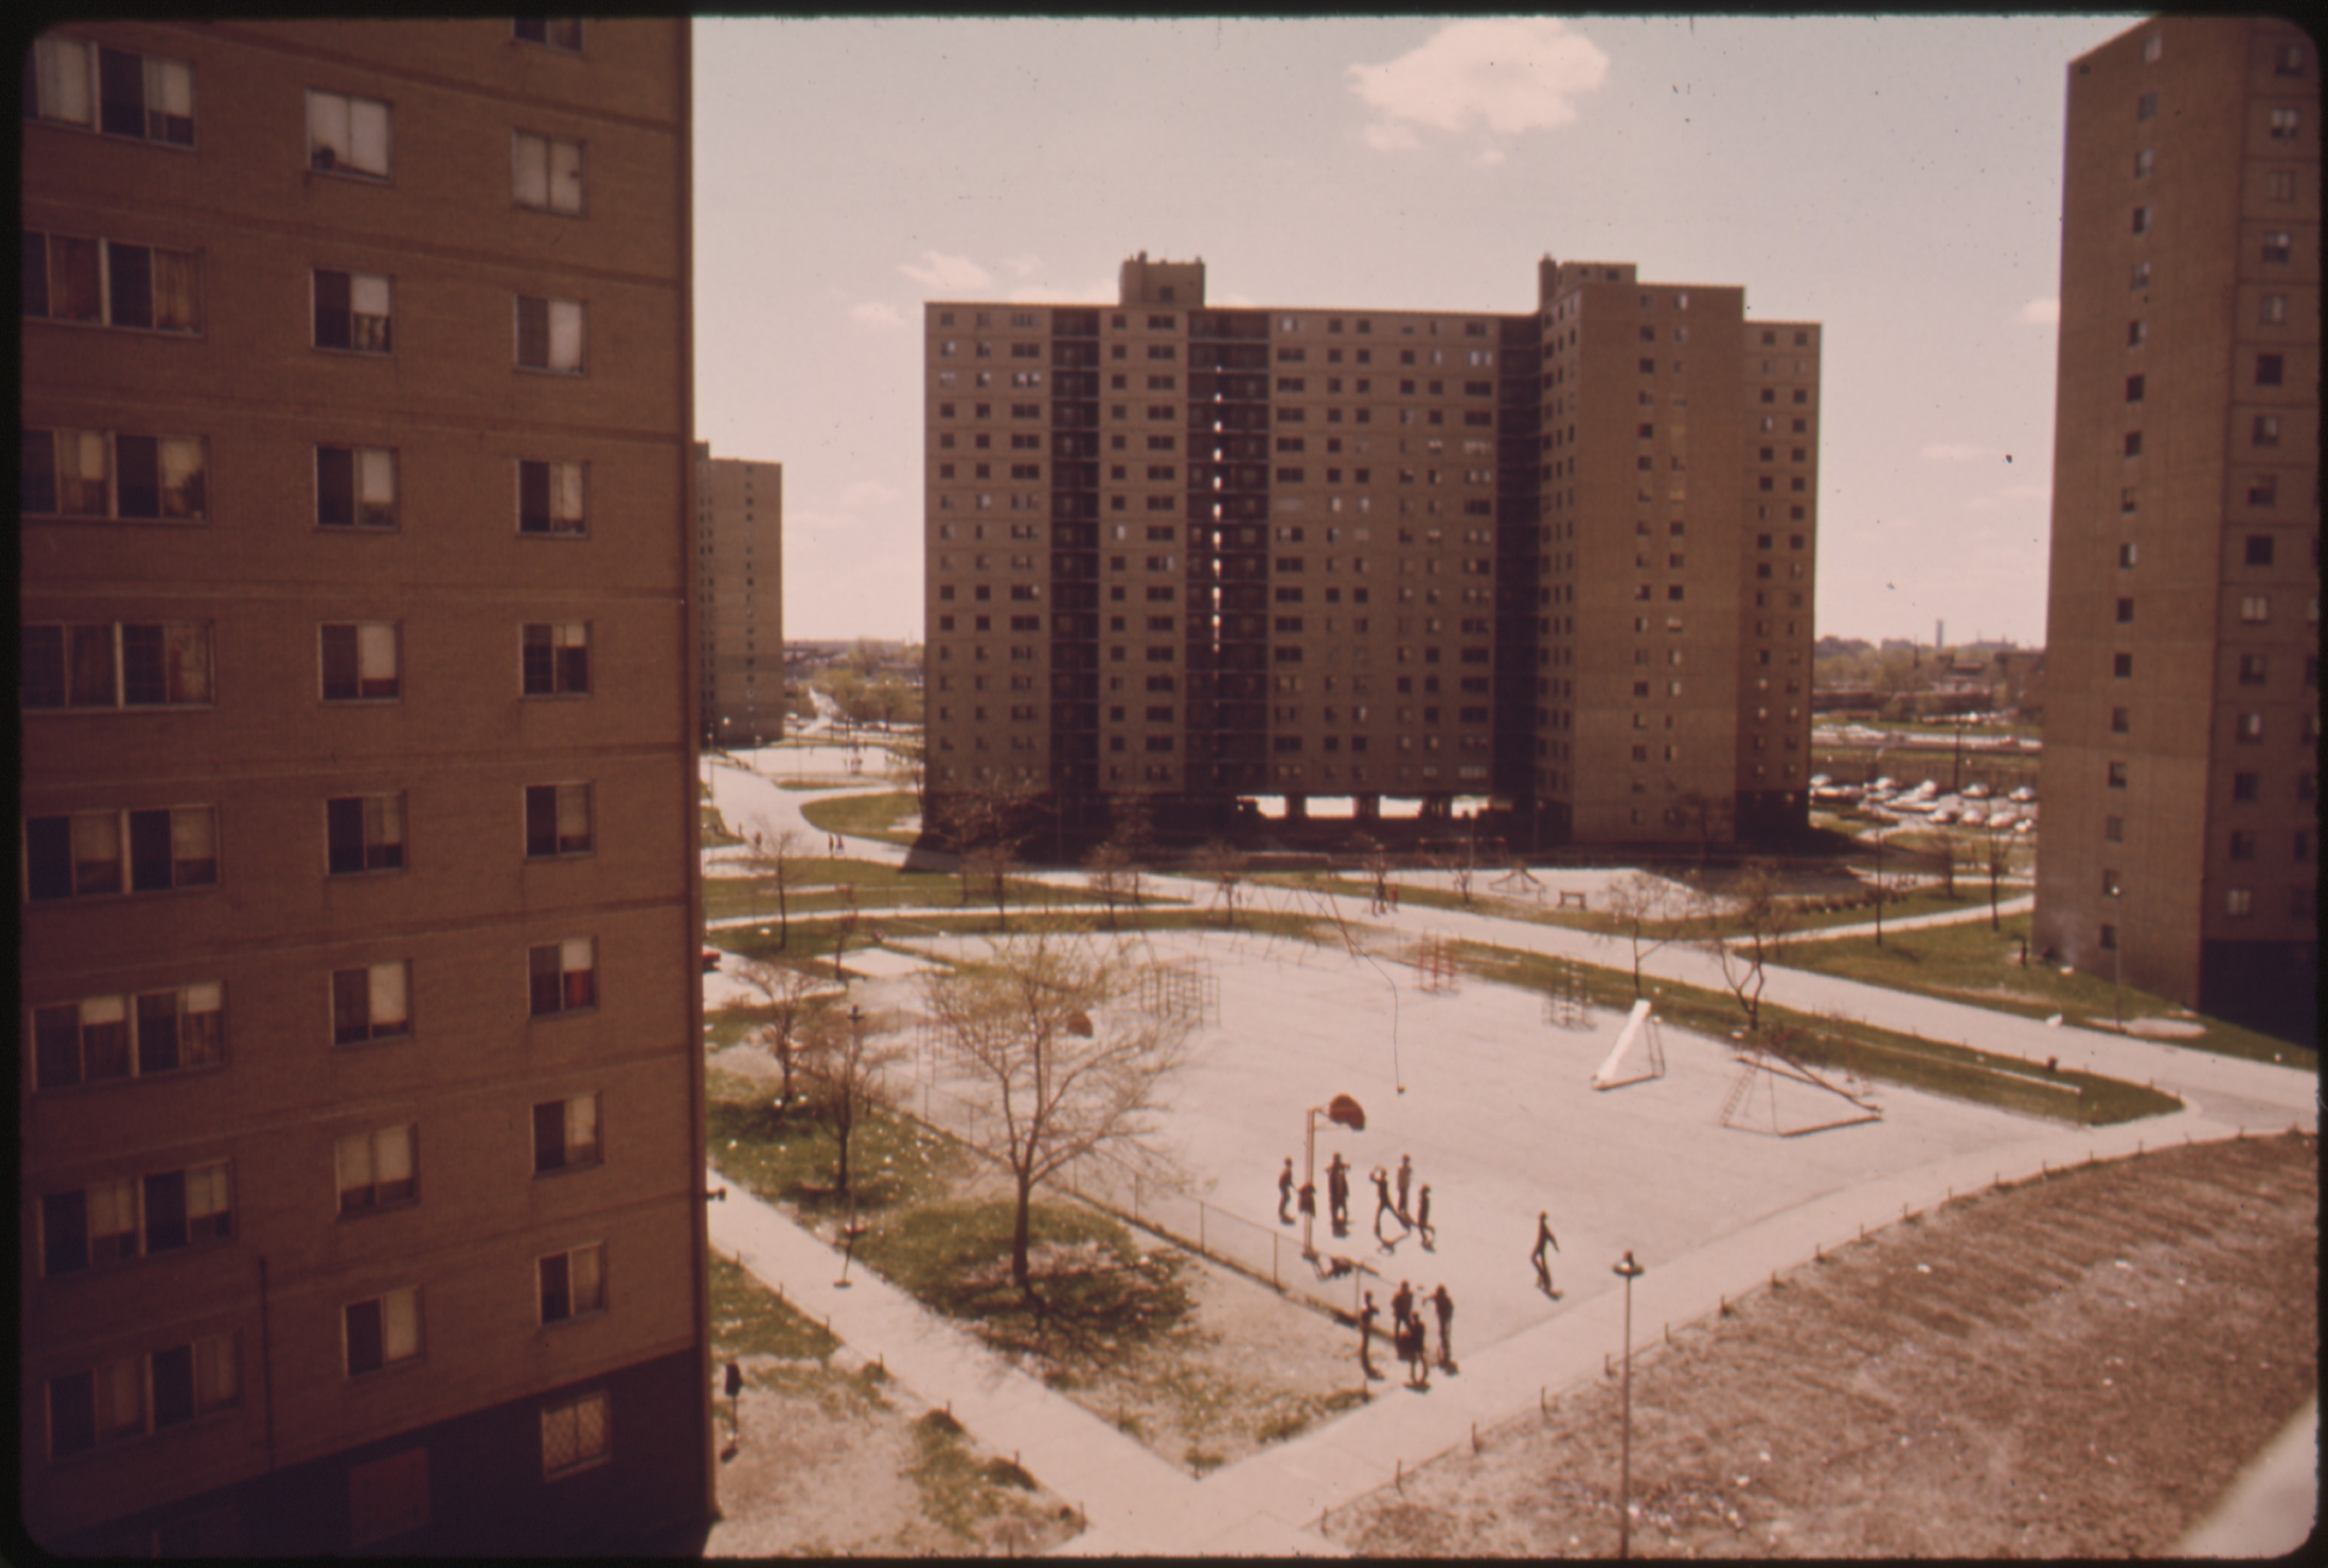 File:STATEWAY GARDENS HIGHRISE HOUSING PROJECT ON CHICAGO'S SOUTH SIDE ...